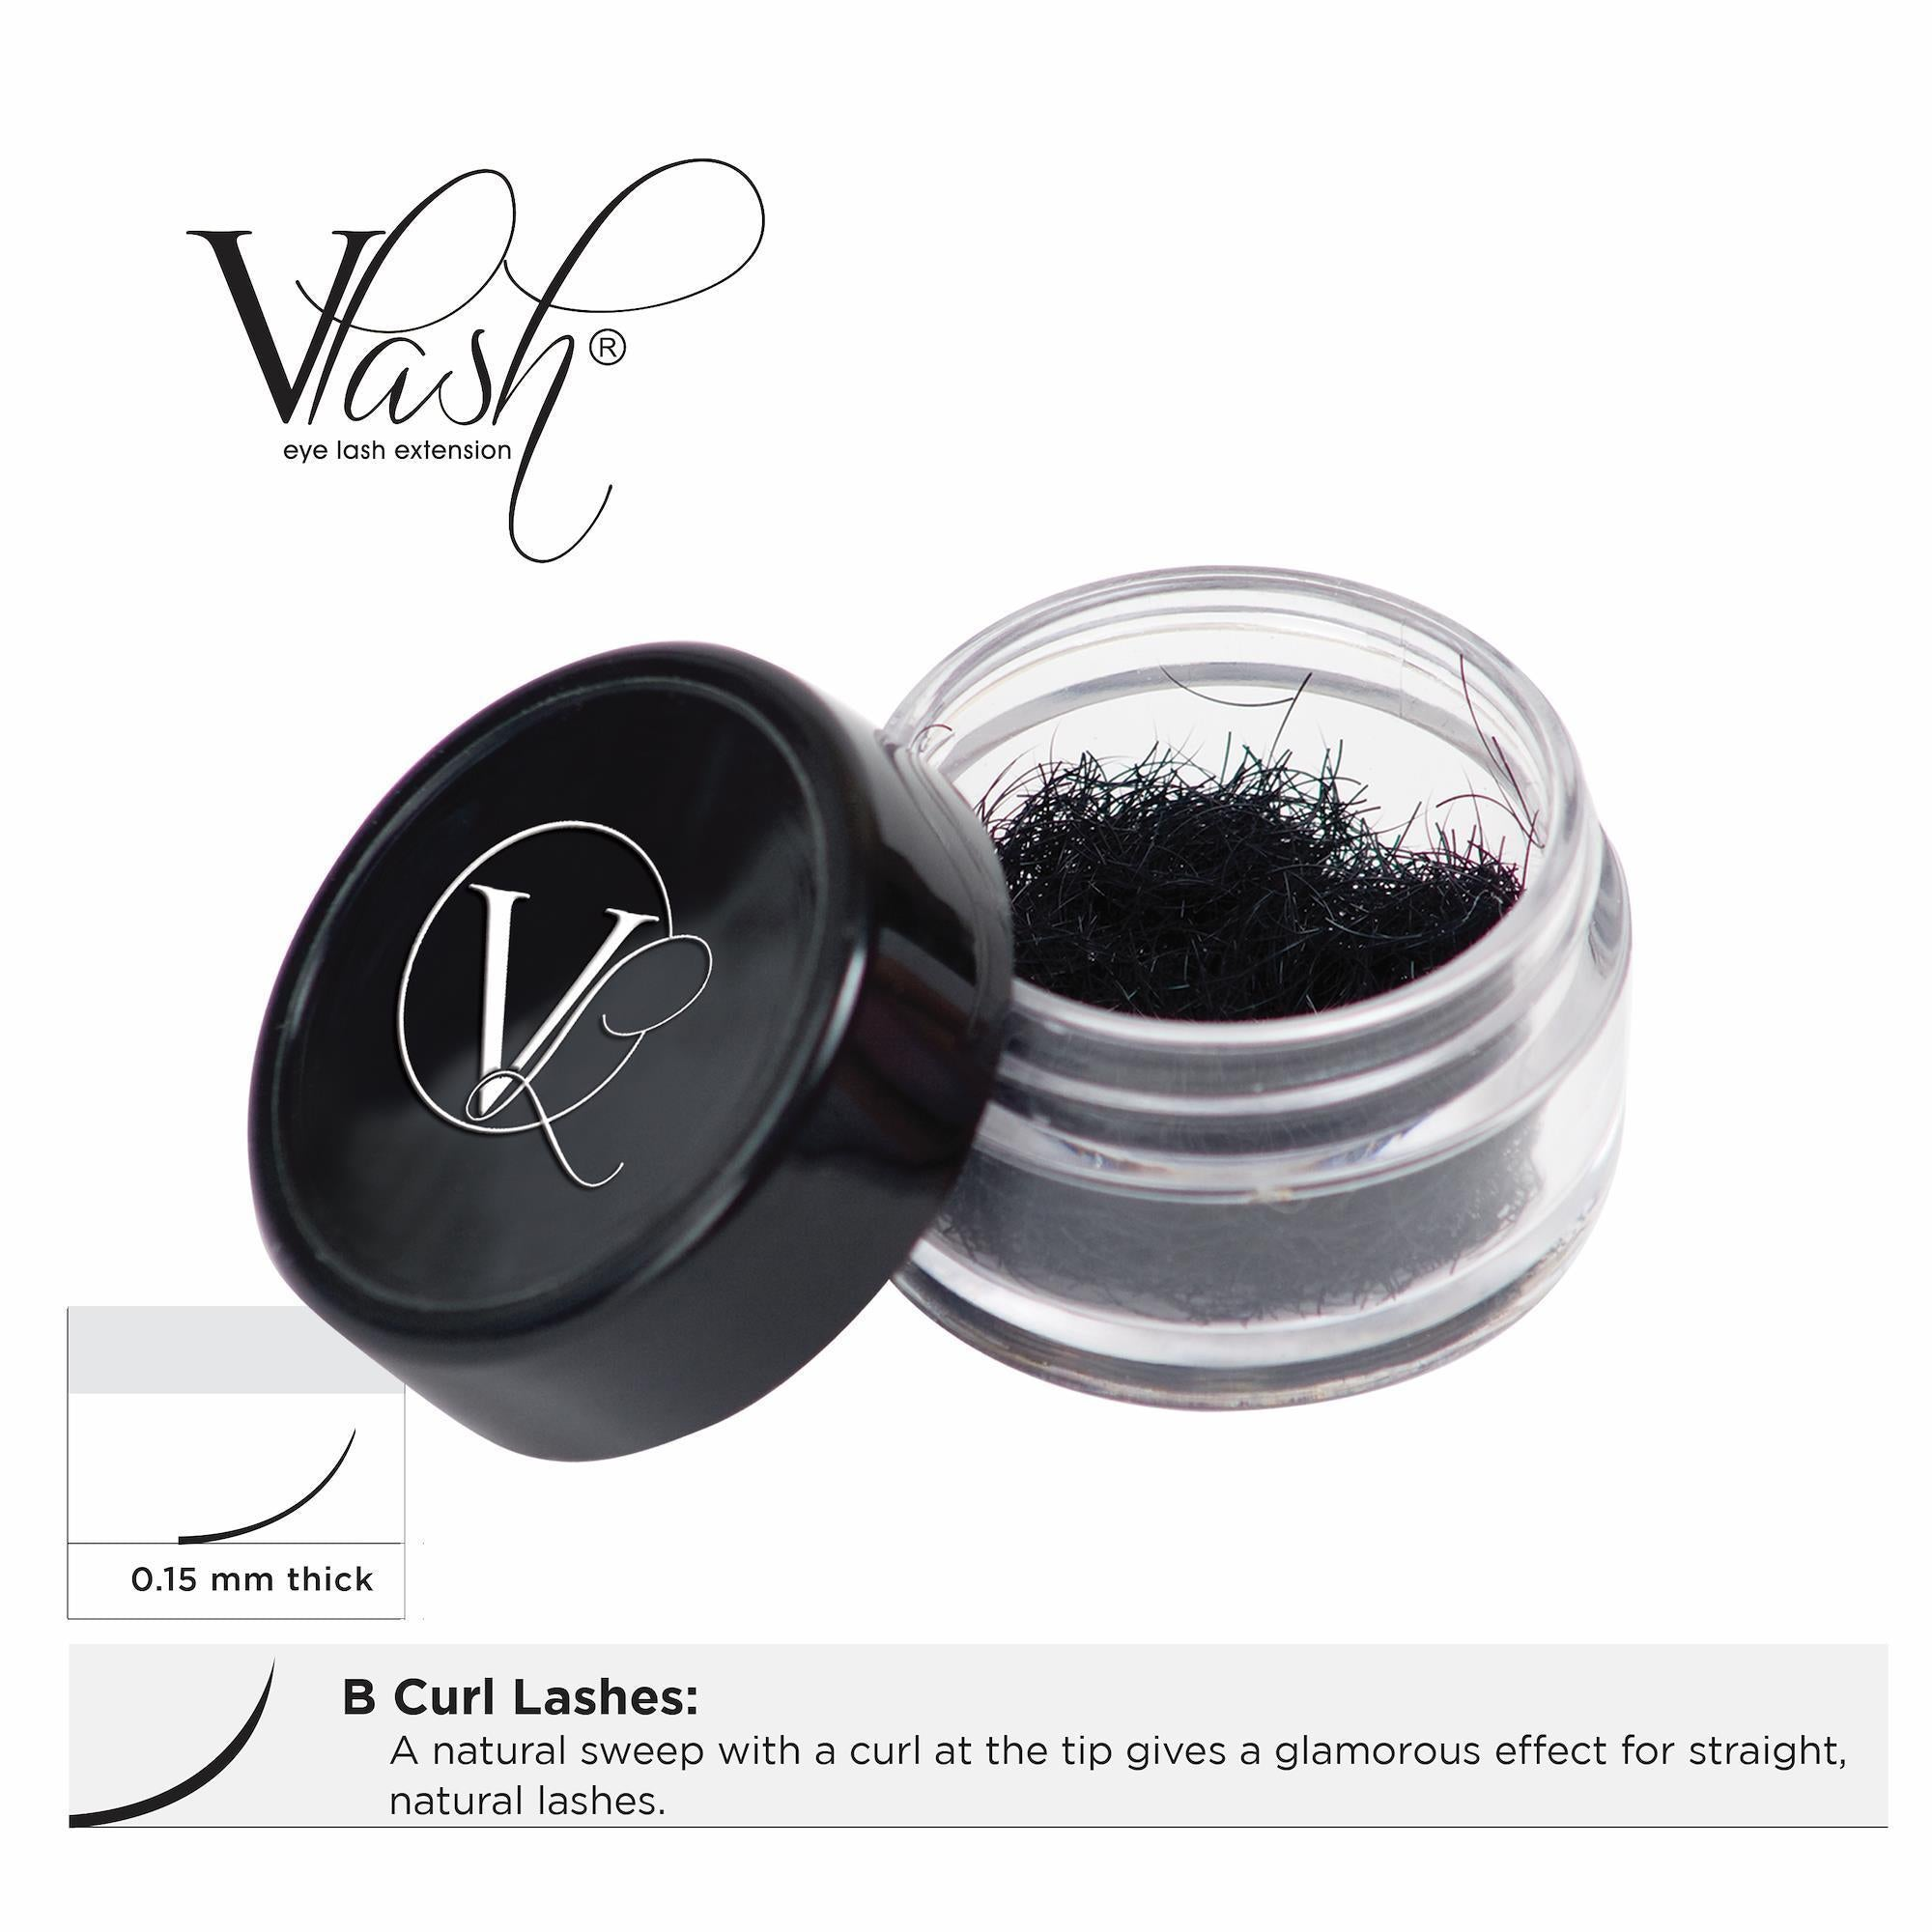 Lash Extensions, Strips, Acces 13mm VLash B Curl Jar Lashes / .15mm thick